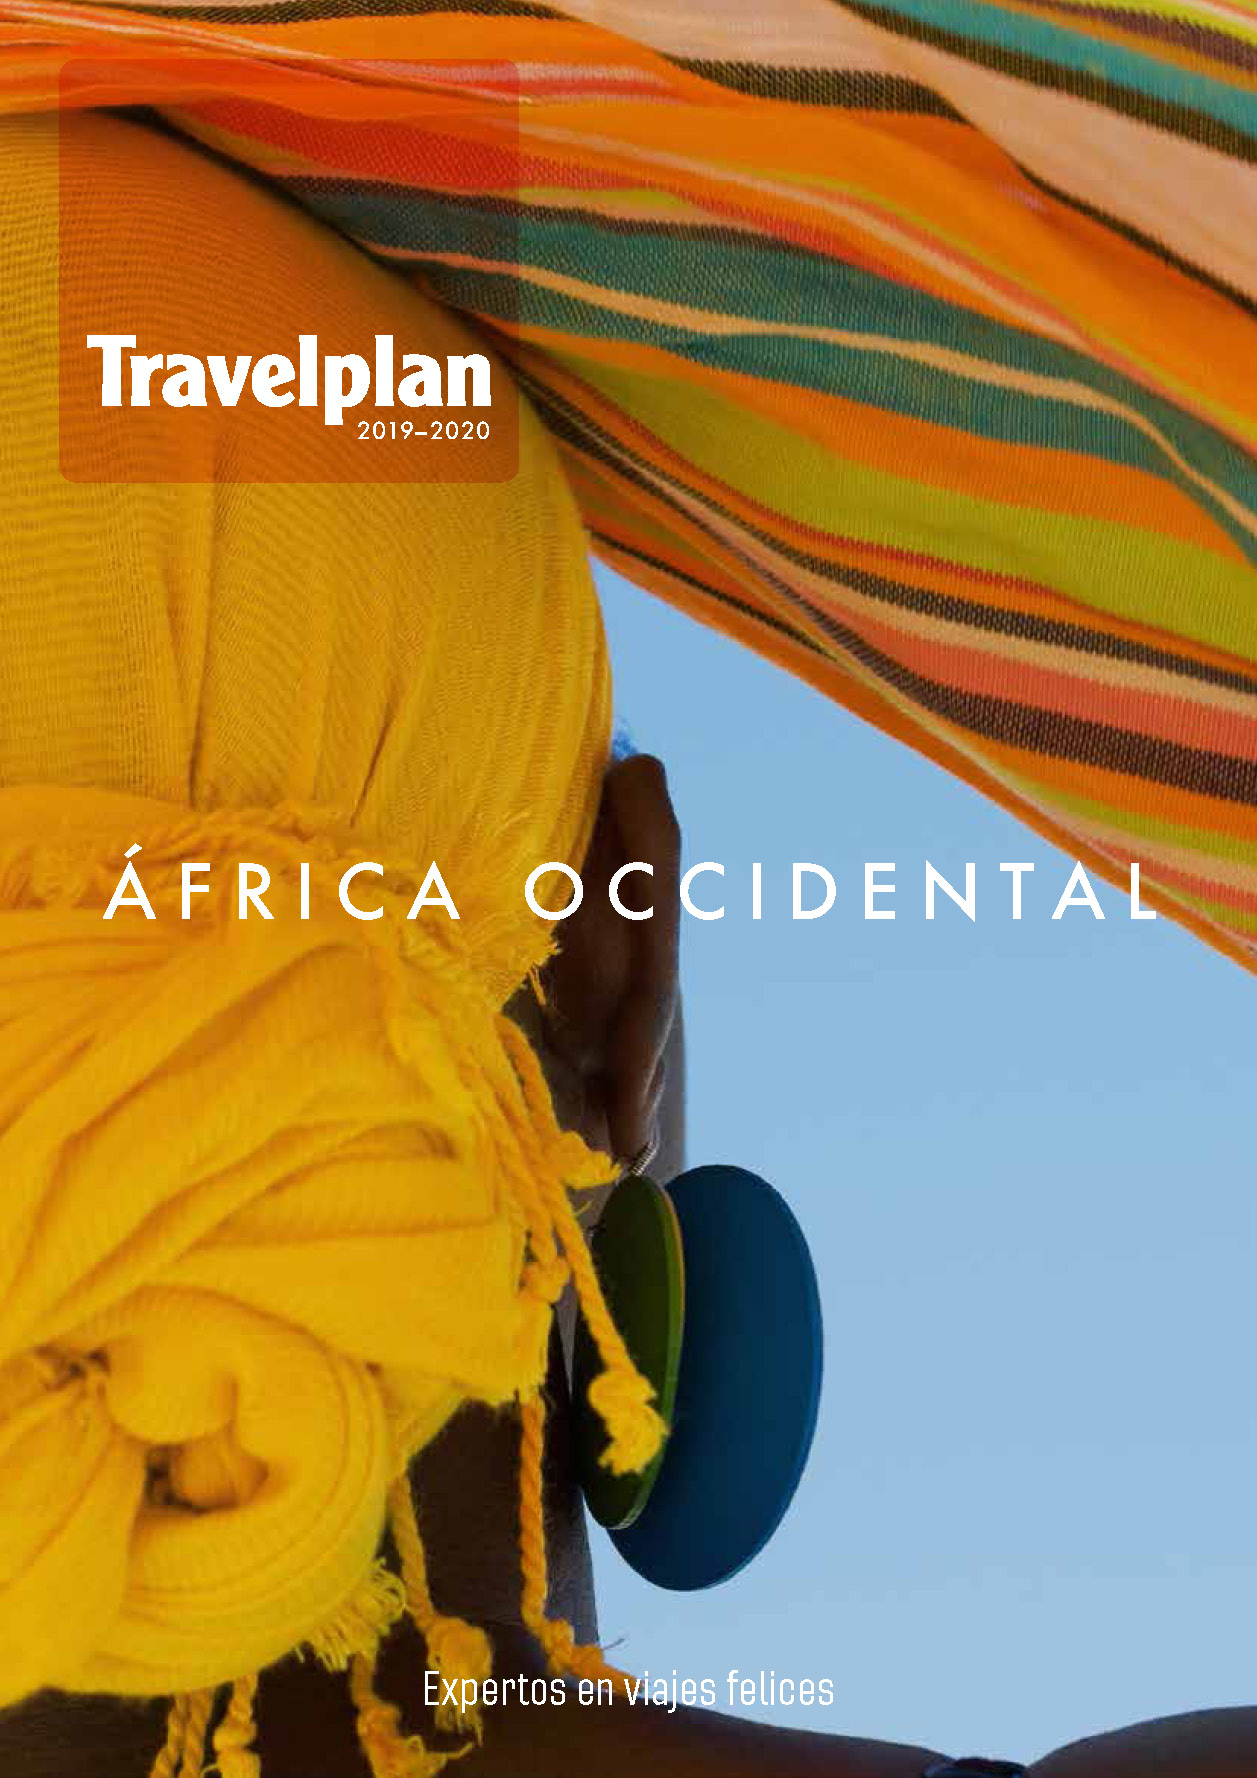 Catalogo Travelplan Africa Occidental 2019-2020